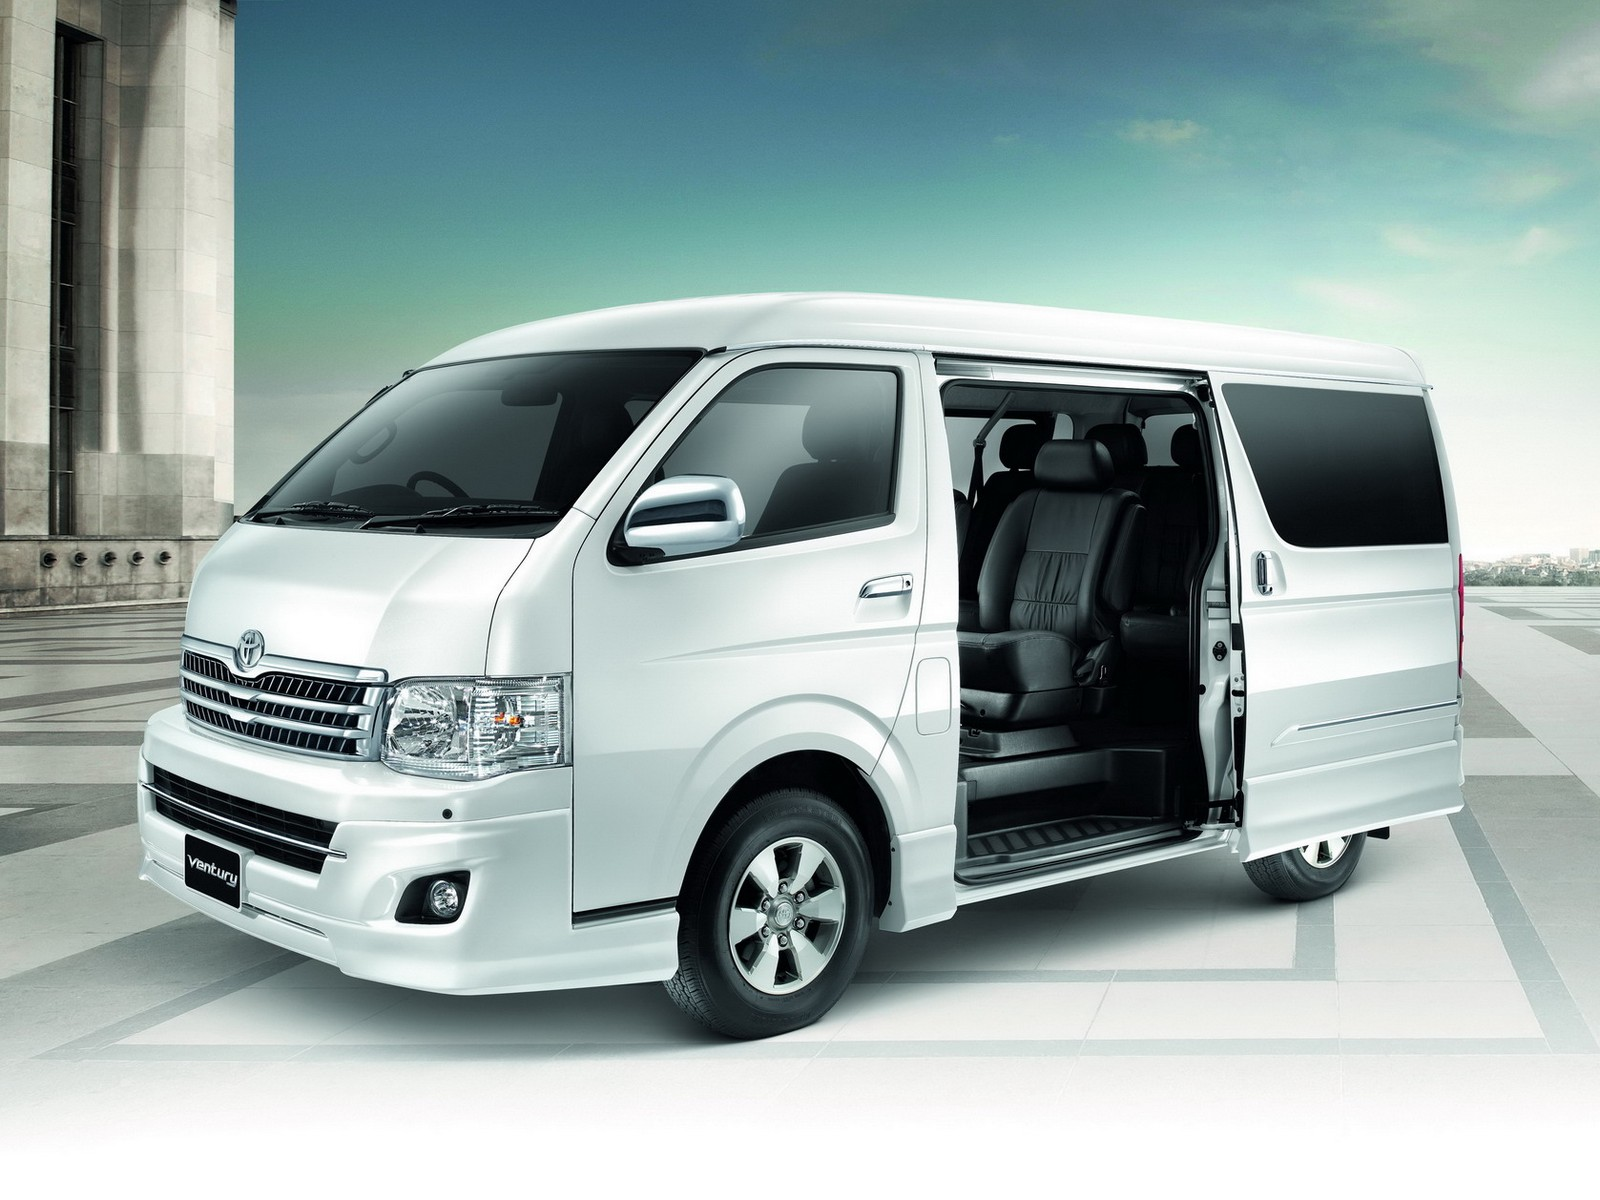 Toyota ventury photo - 4